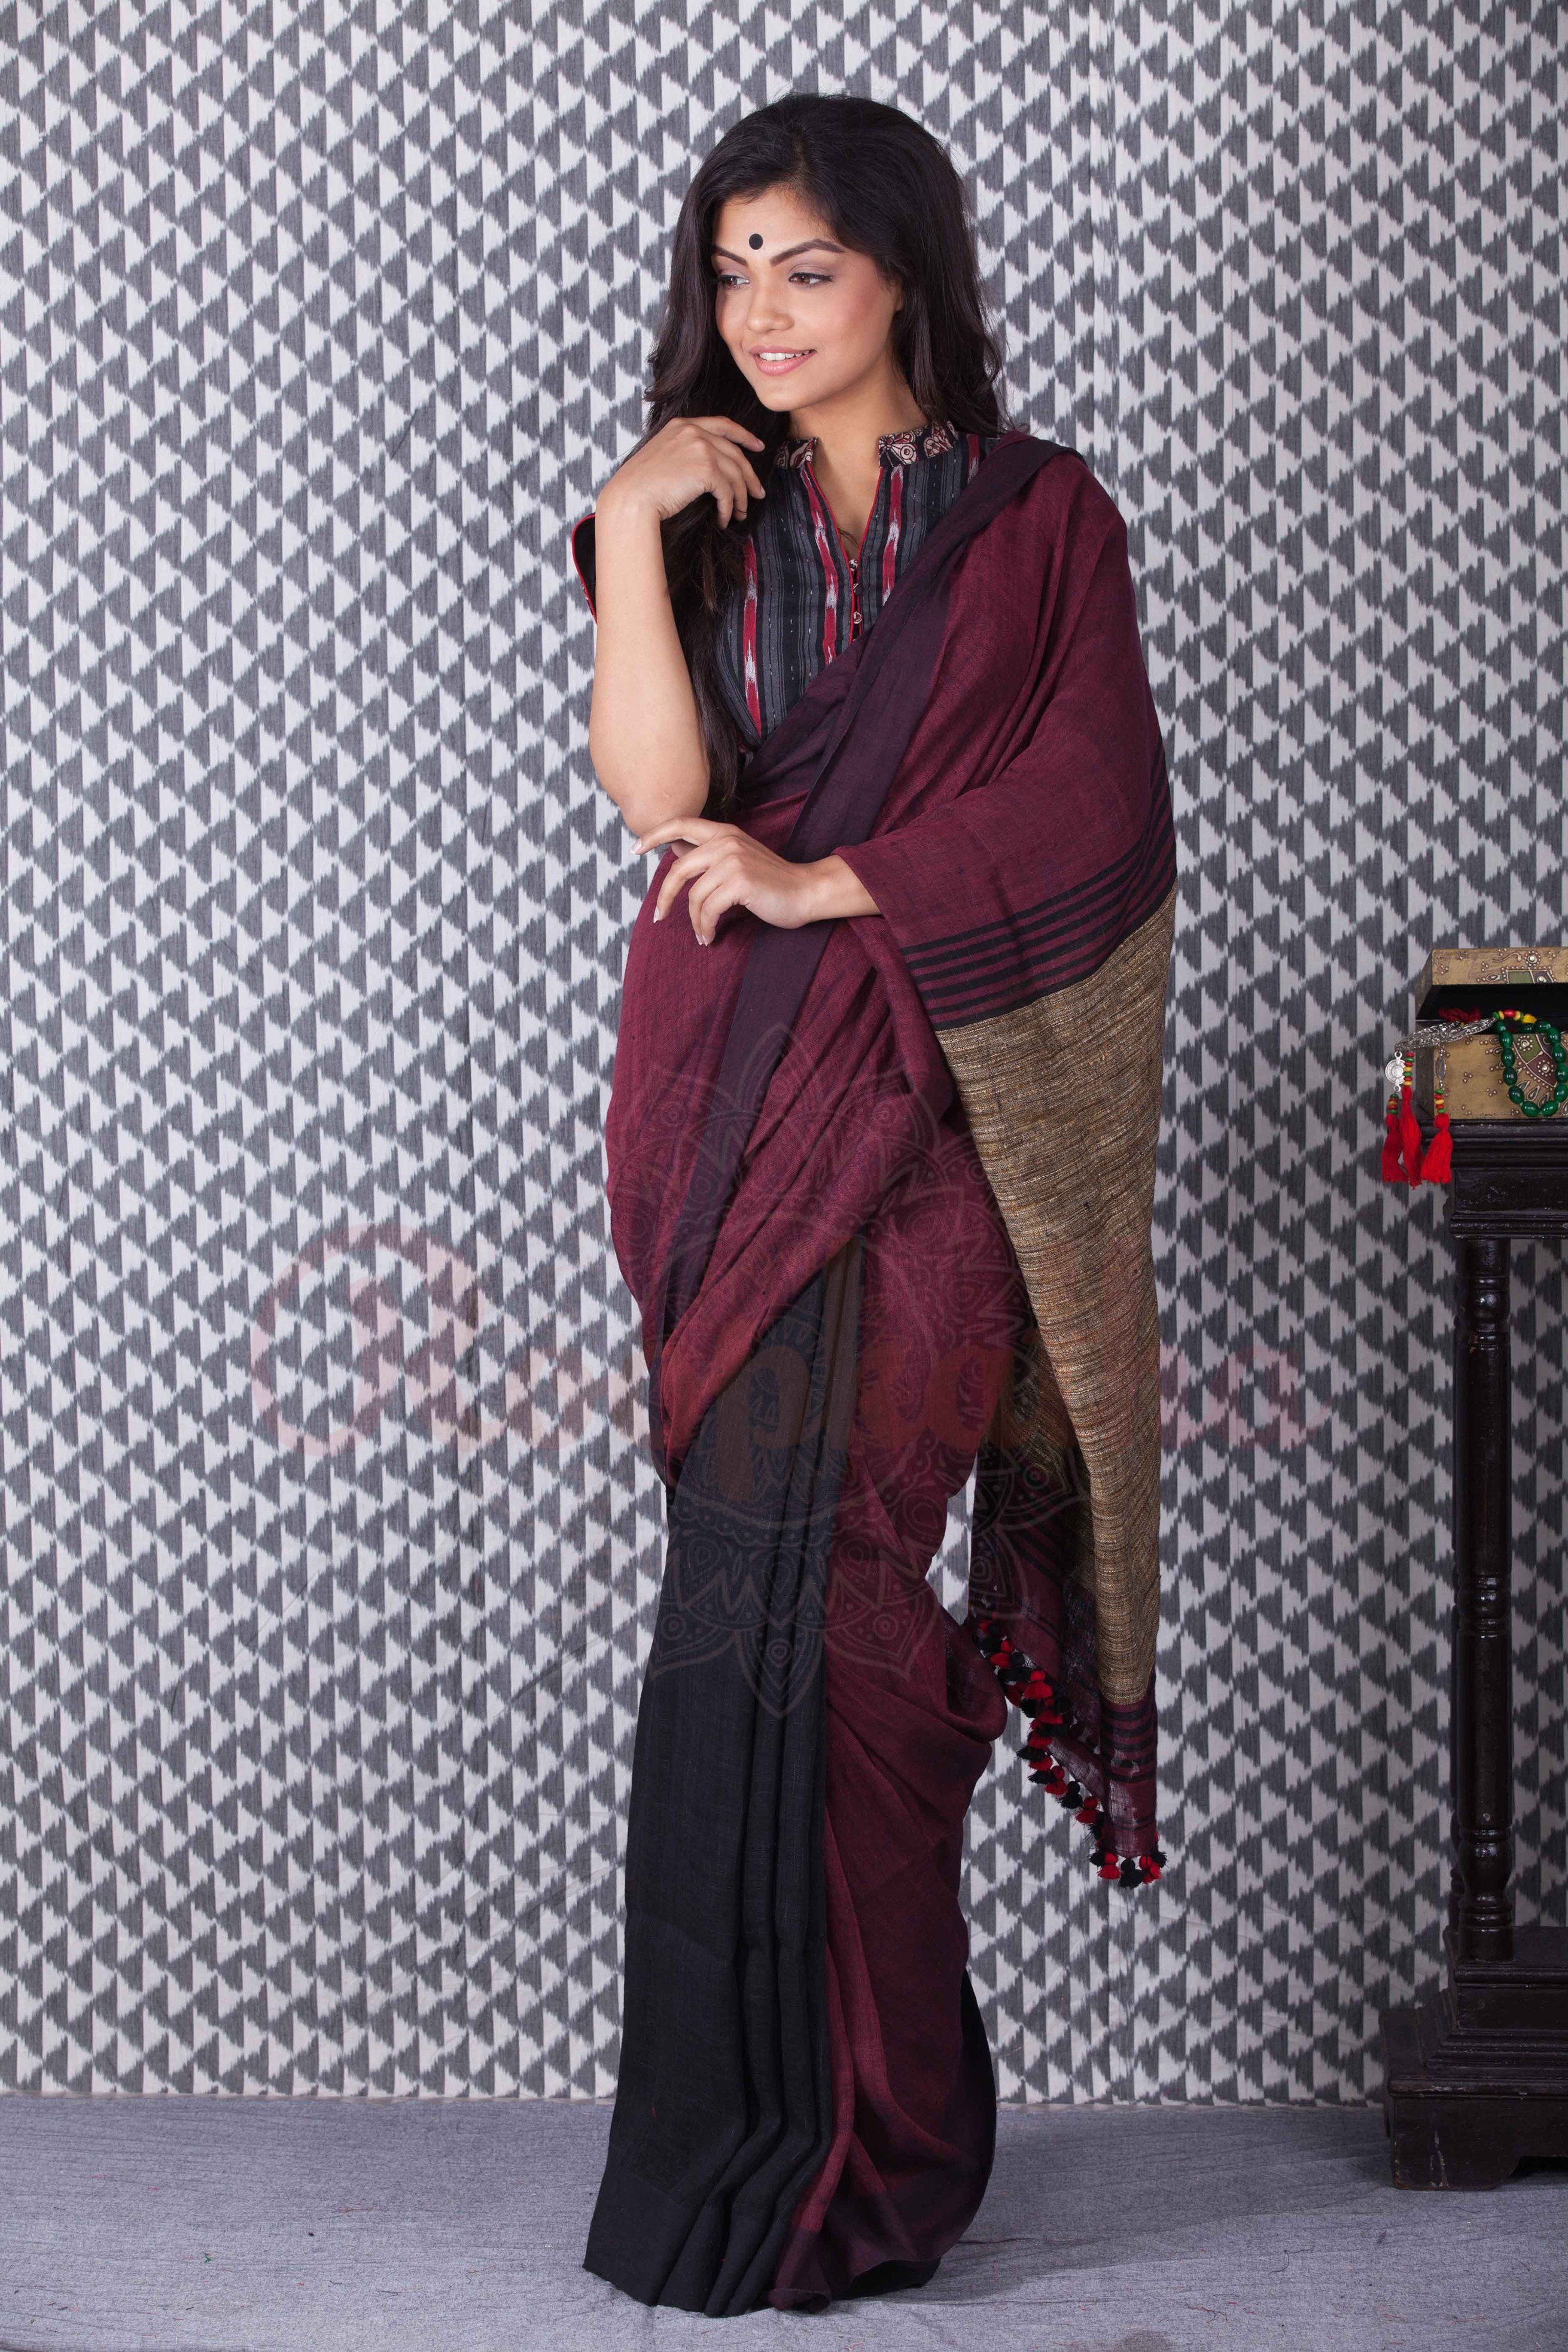 755706a3bc3fe Black   Maroon Linen Saree With Pompom - Roopkatha - A Story of Art ...